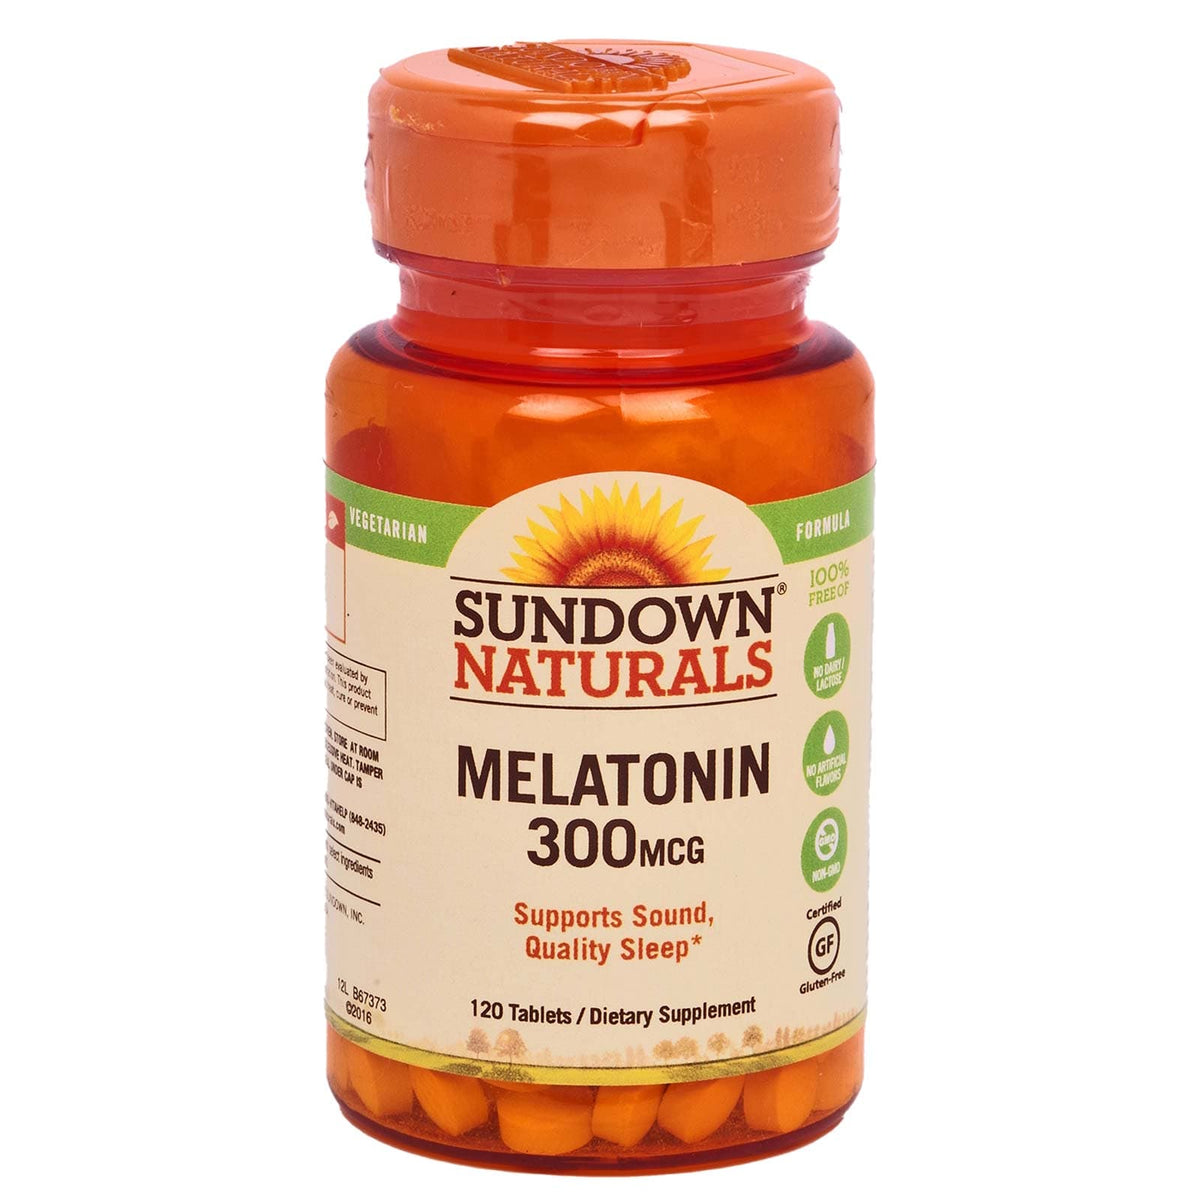 Sundown Melitonin 300mg - Suupports restful sleep, and is ideal when you're experiencing occasional sleeplessness (24/cs)